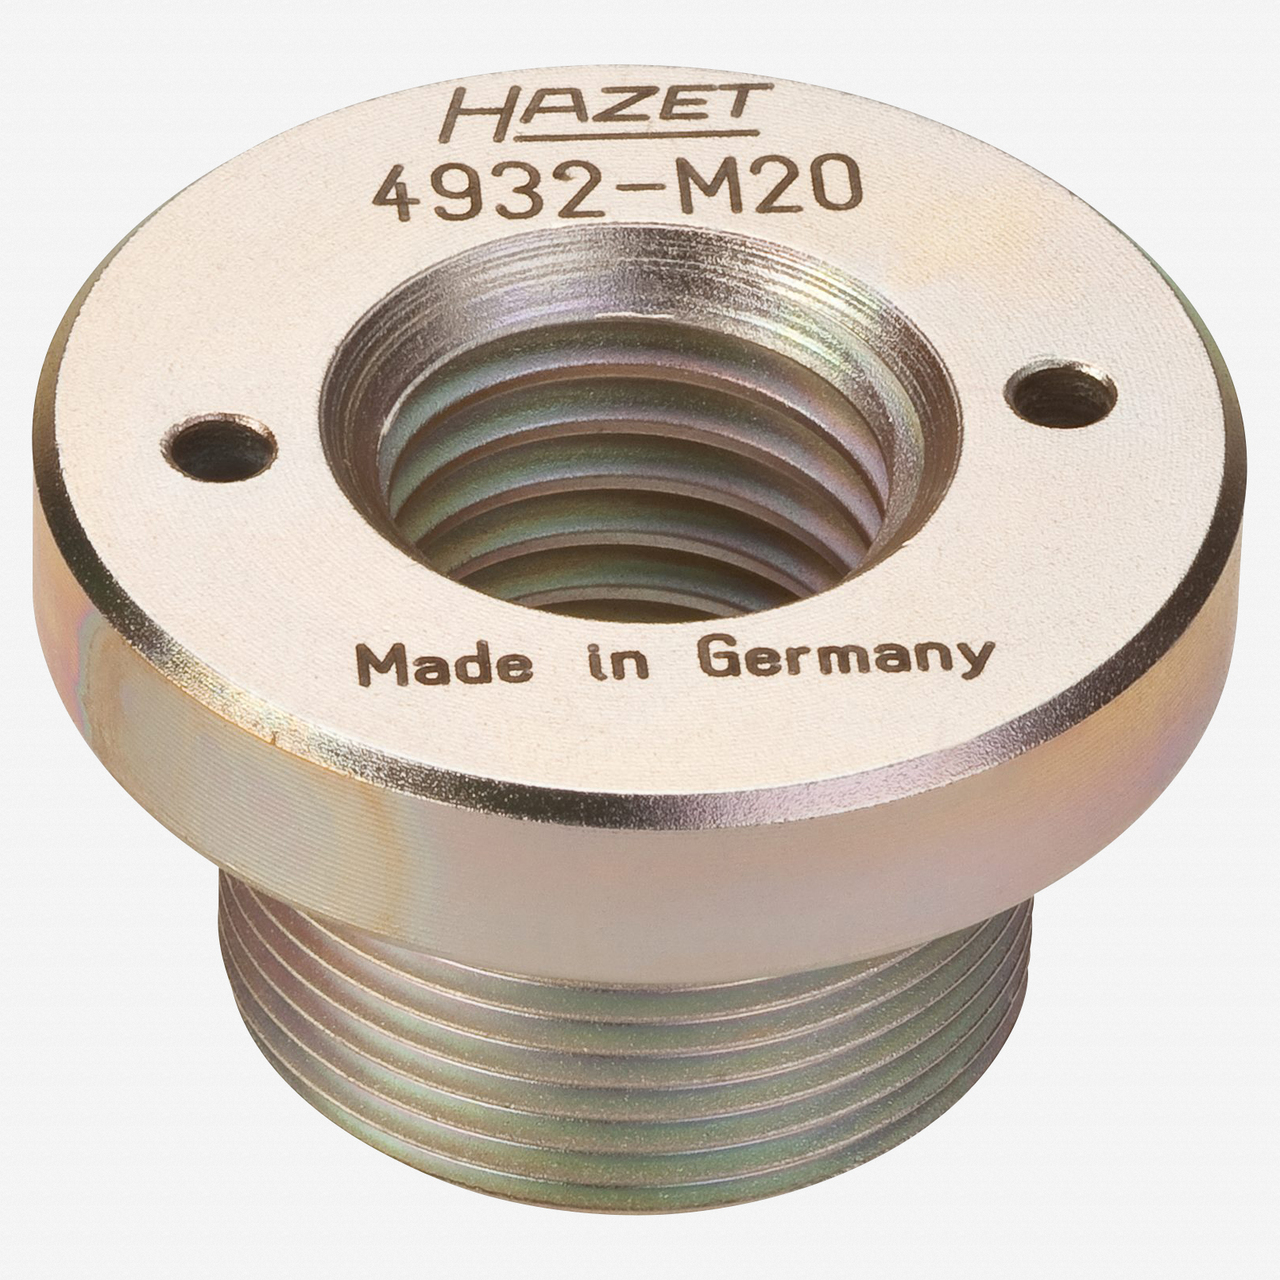 Hazet 4932-M20 Adapter for hollow piston cylinder 4932-17